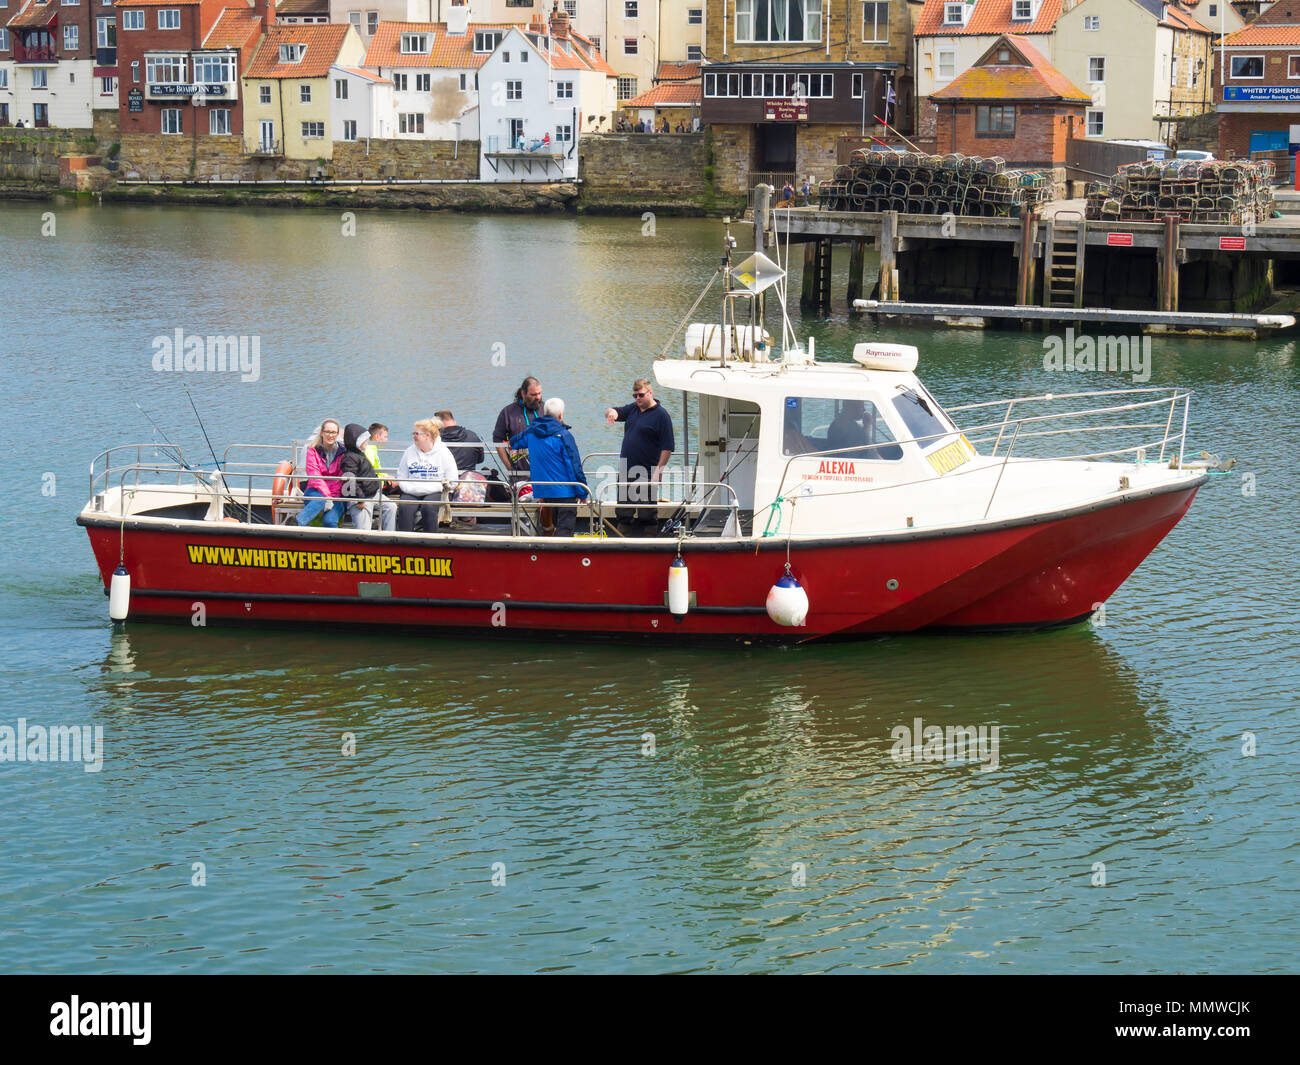 'Alexia' a fishing boat providing sea fishing trips for anglers arriving back in Whitby harbour - Stock Image